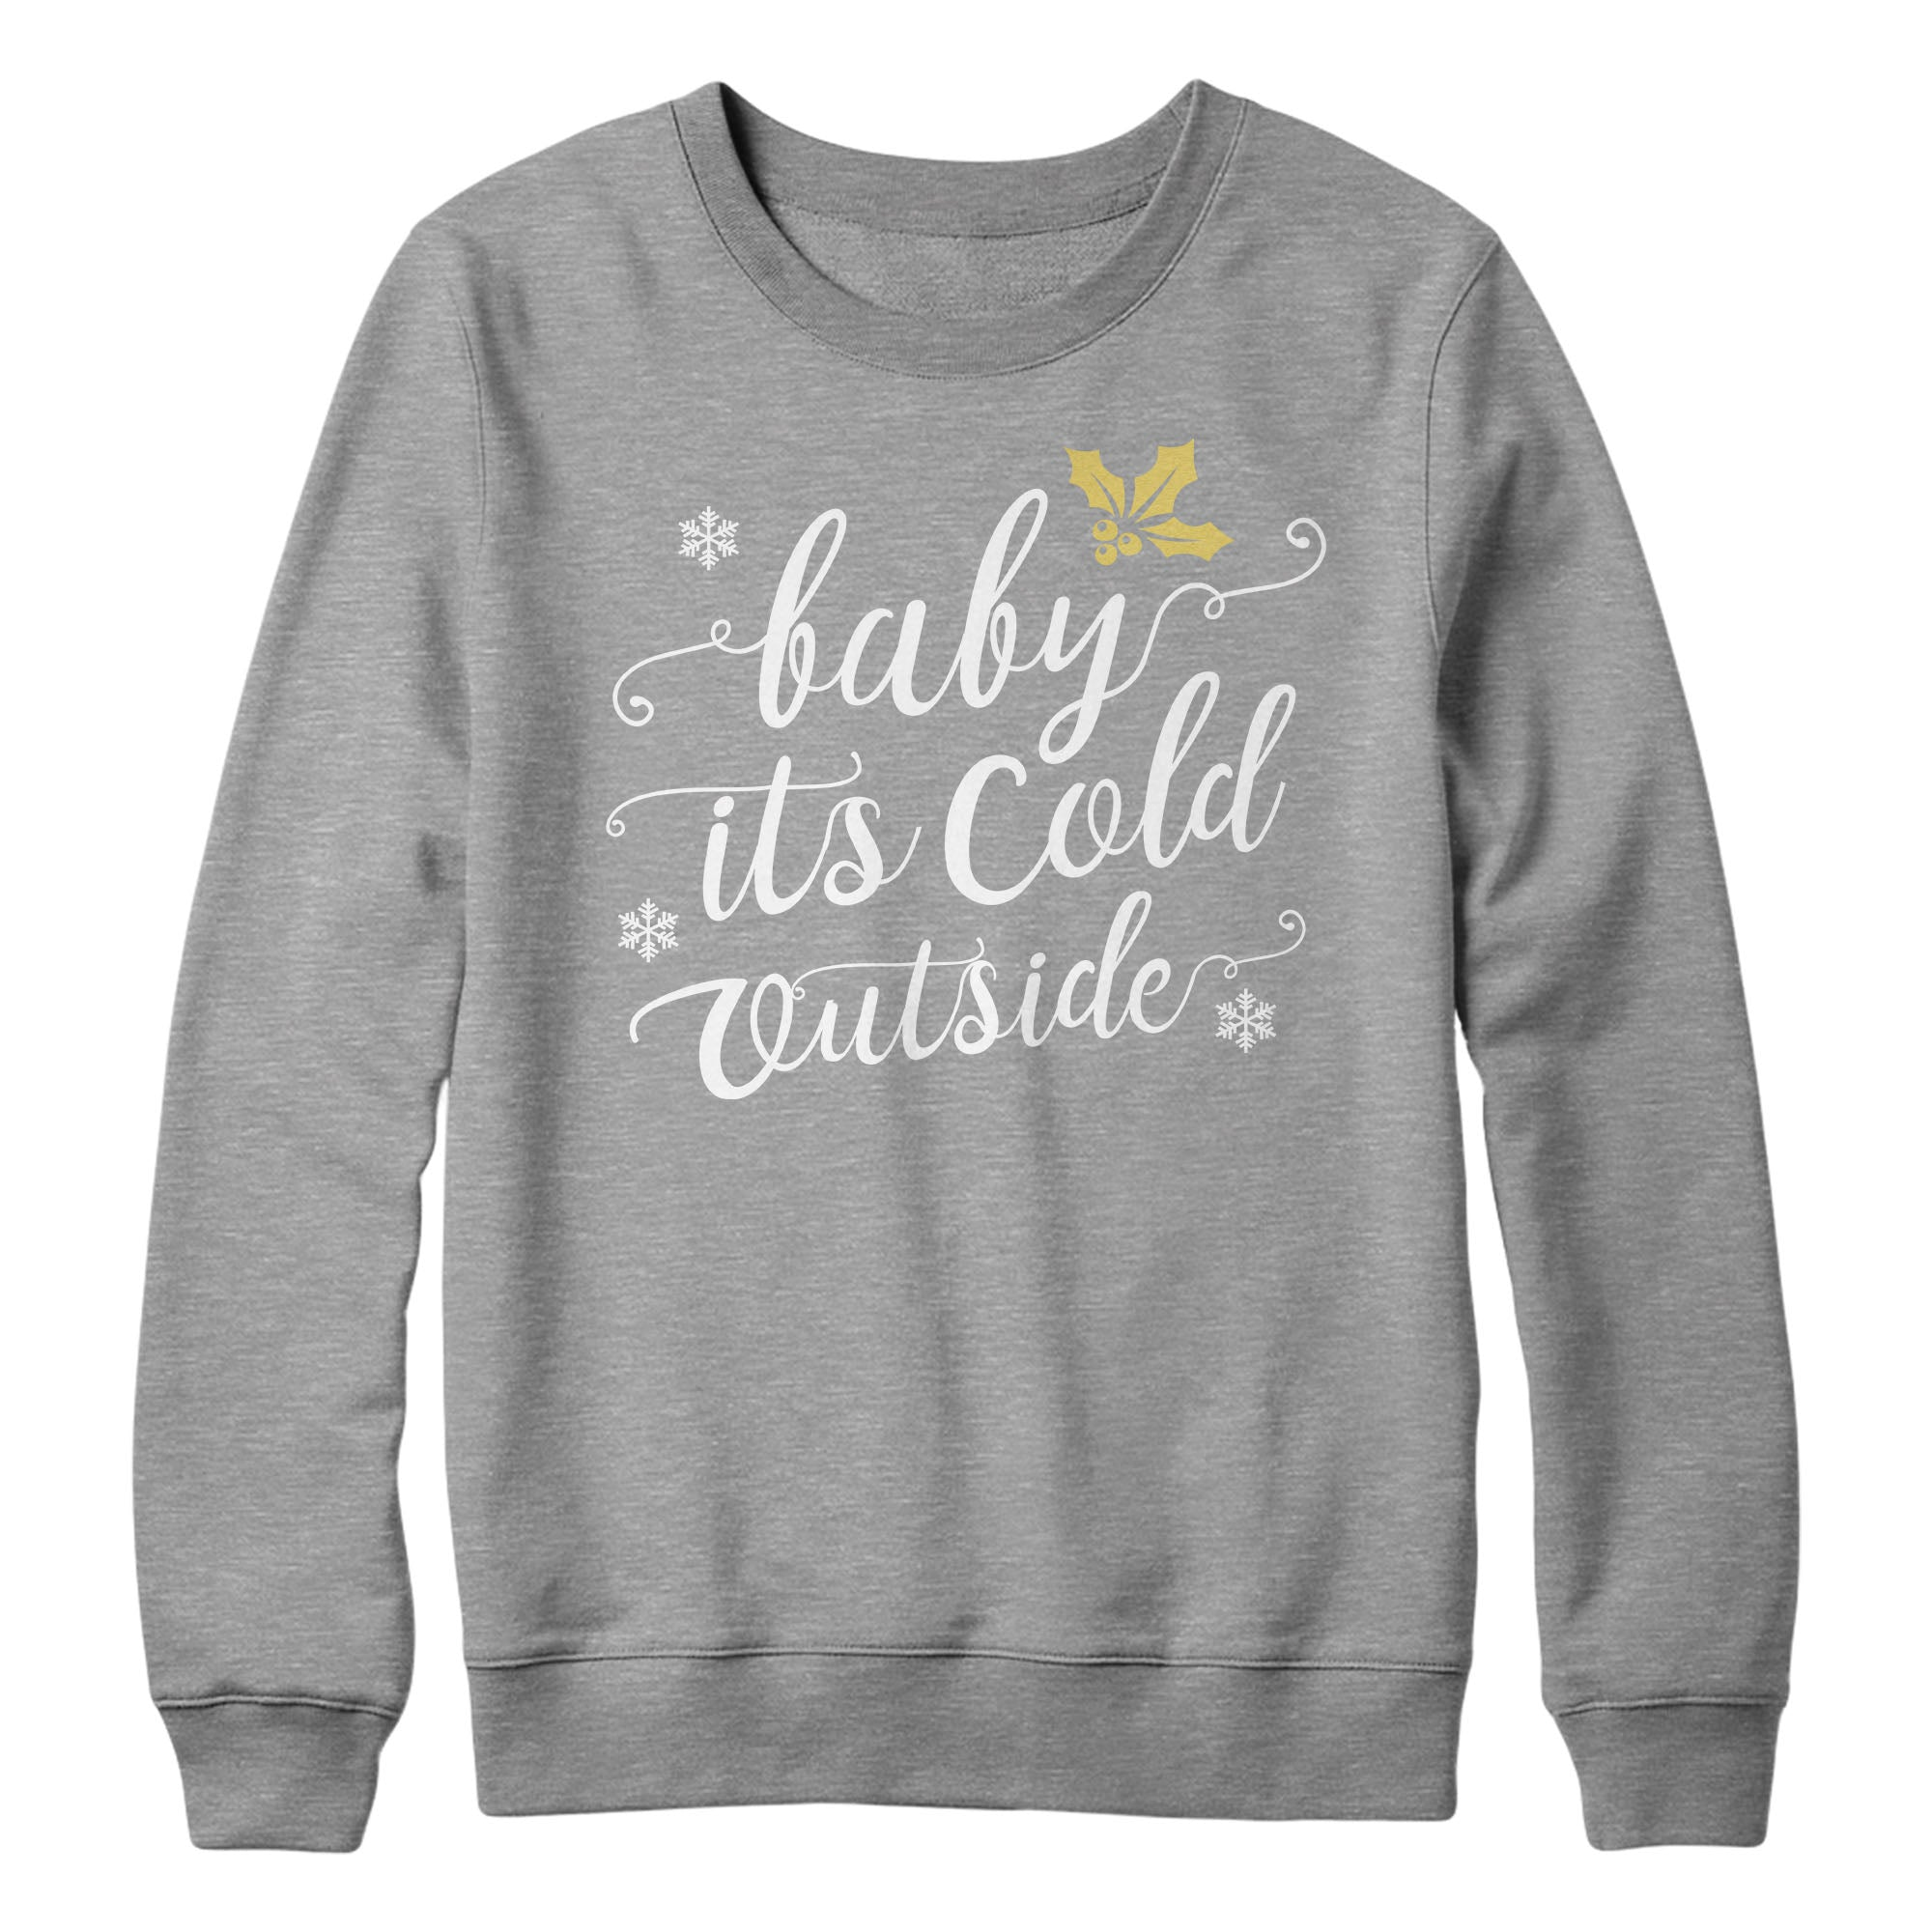 06f19e022b Baby It s Cold Outside Christmas Jumper Sweater Ladies Cute Top ...